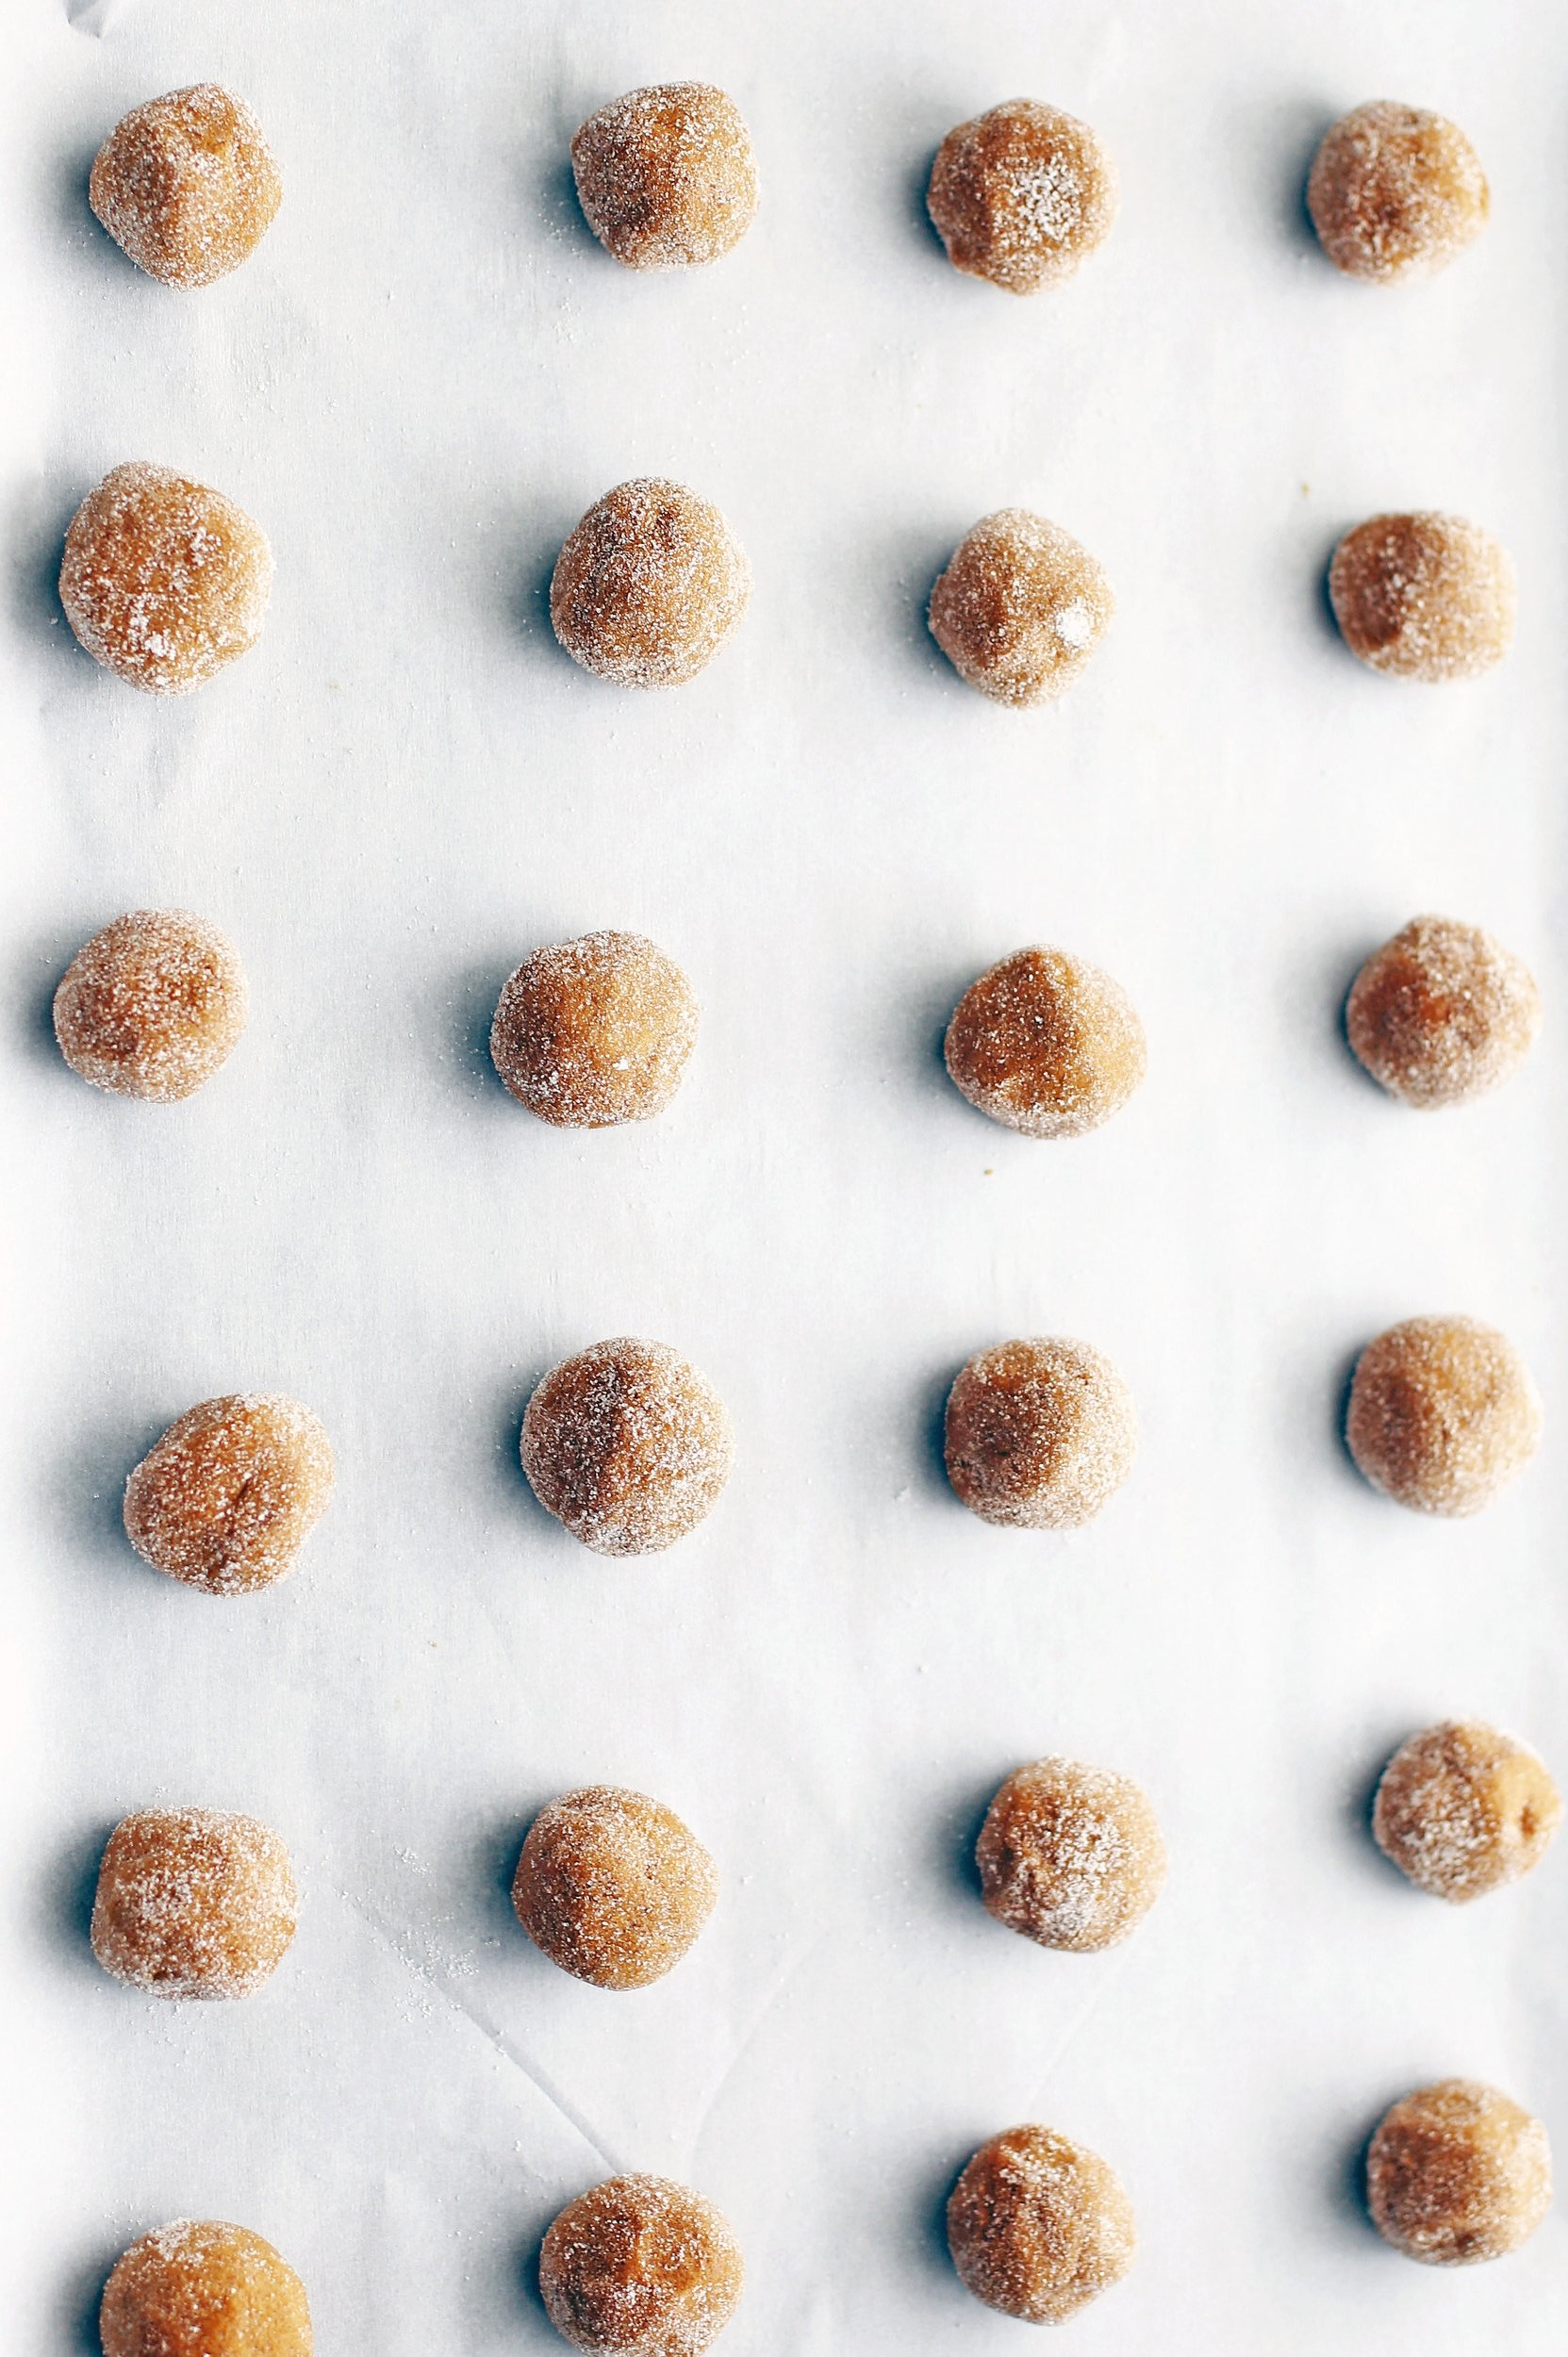 Tablespoon balls of gingersnap cookie dough rolled in sugar on a parchment lined baking sheet.